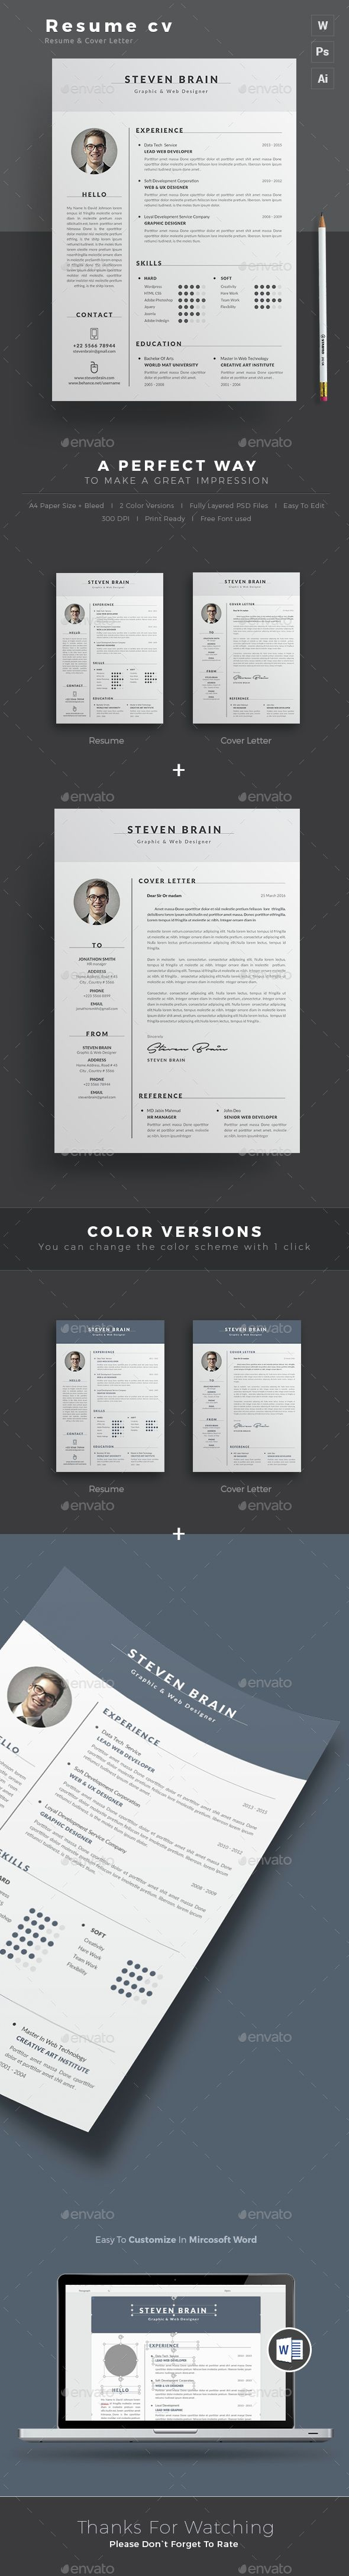 Resume 22 best Resume images on Pinterest